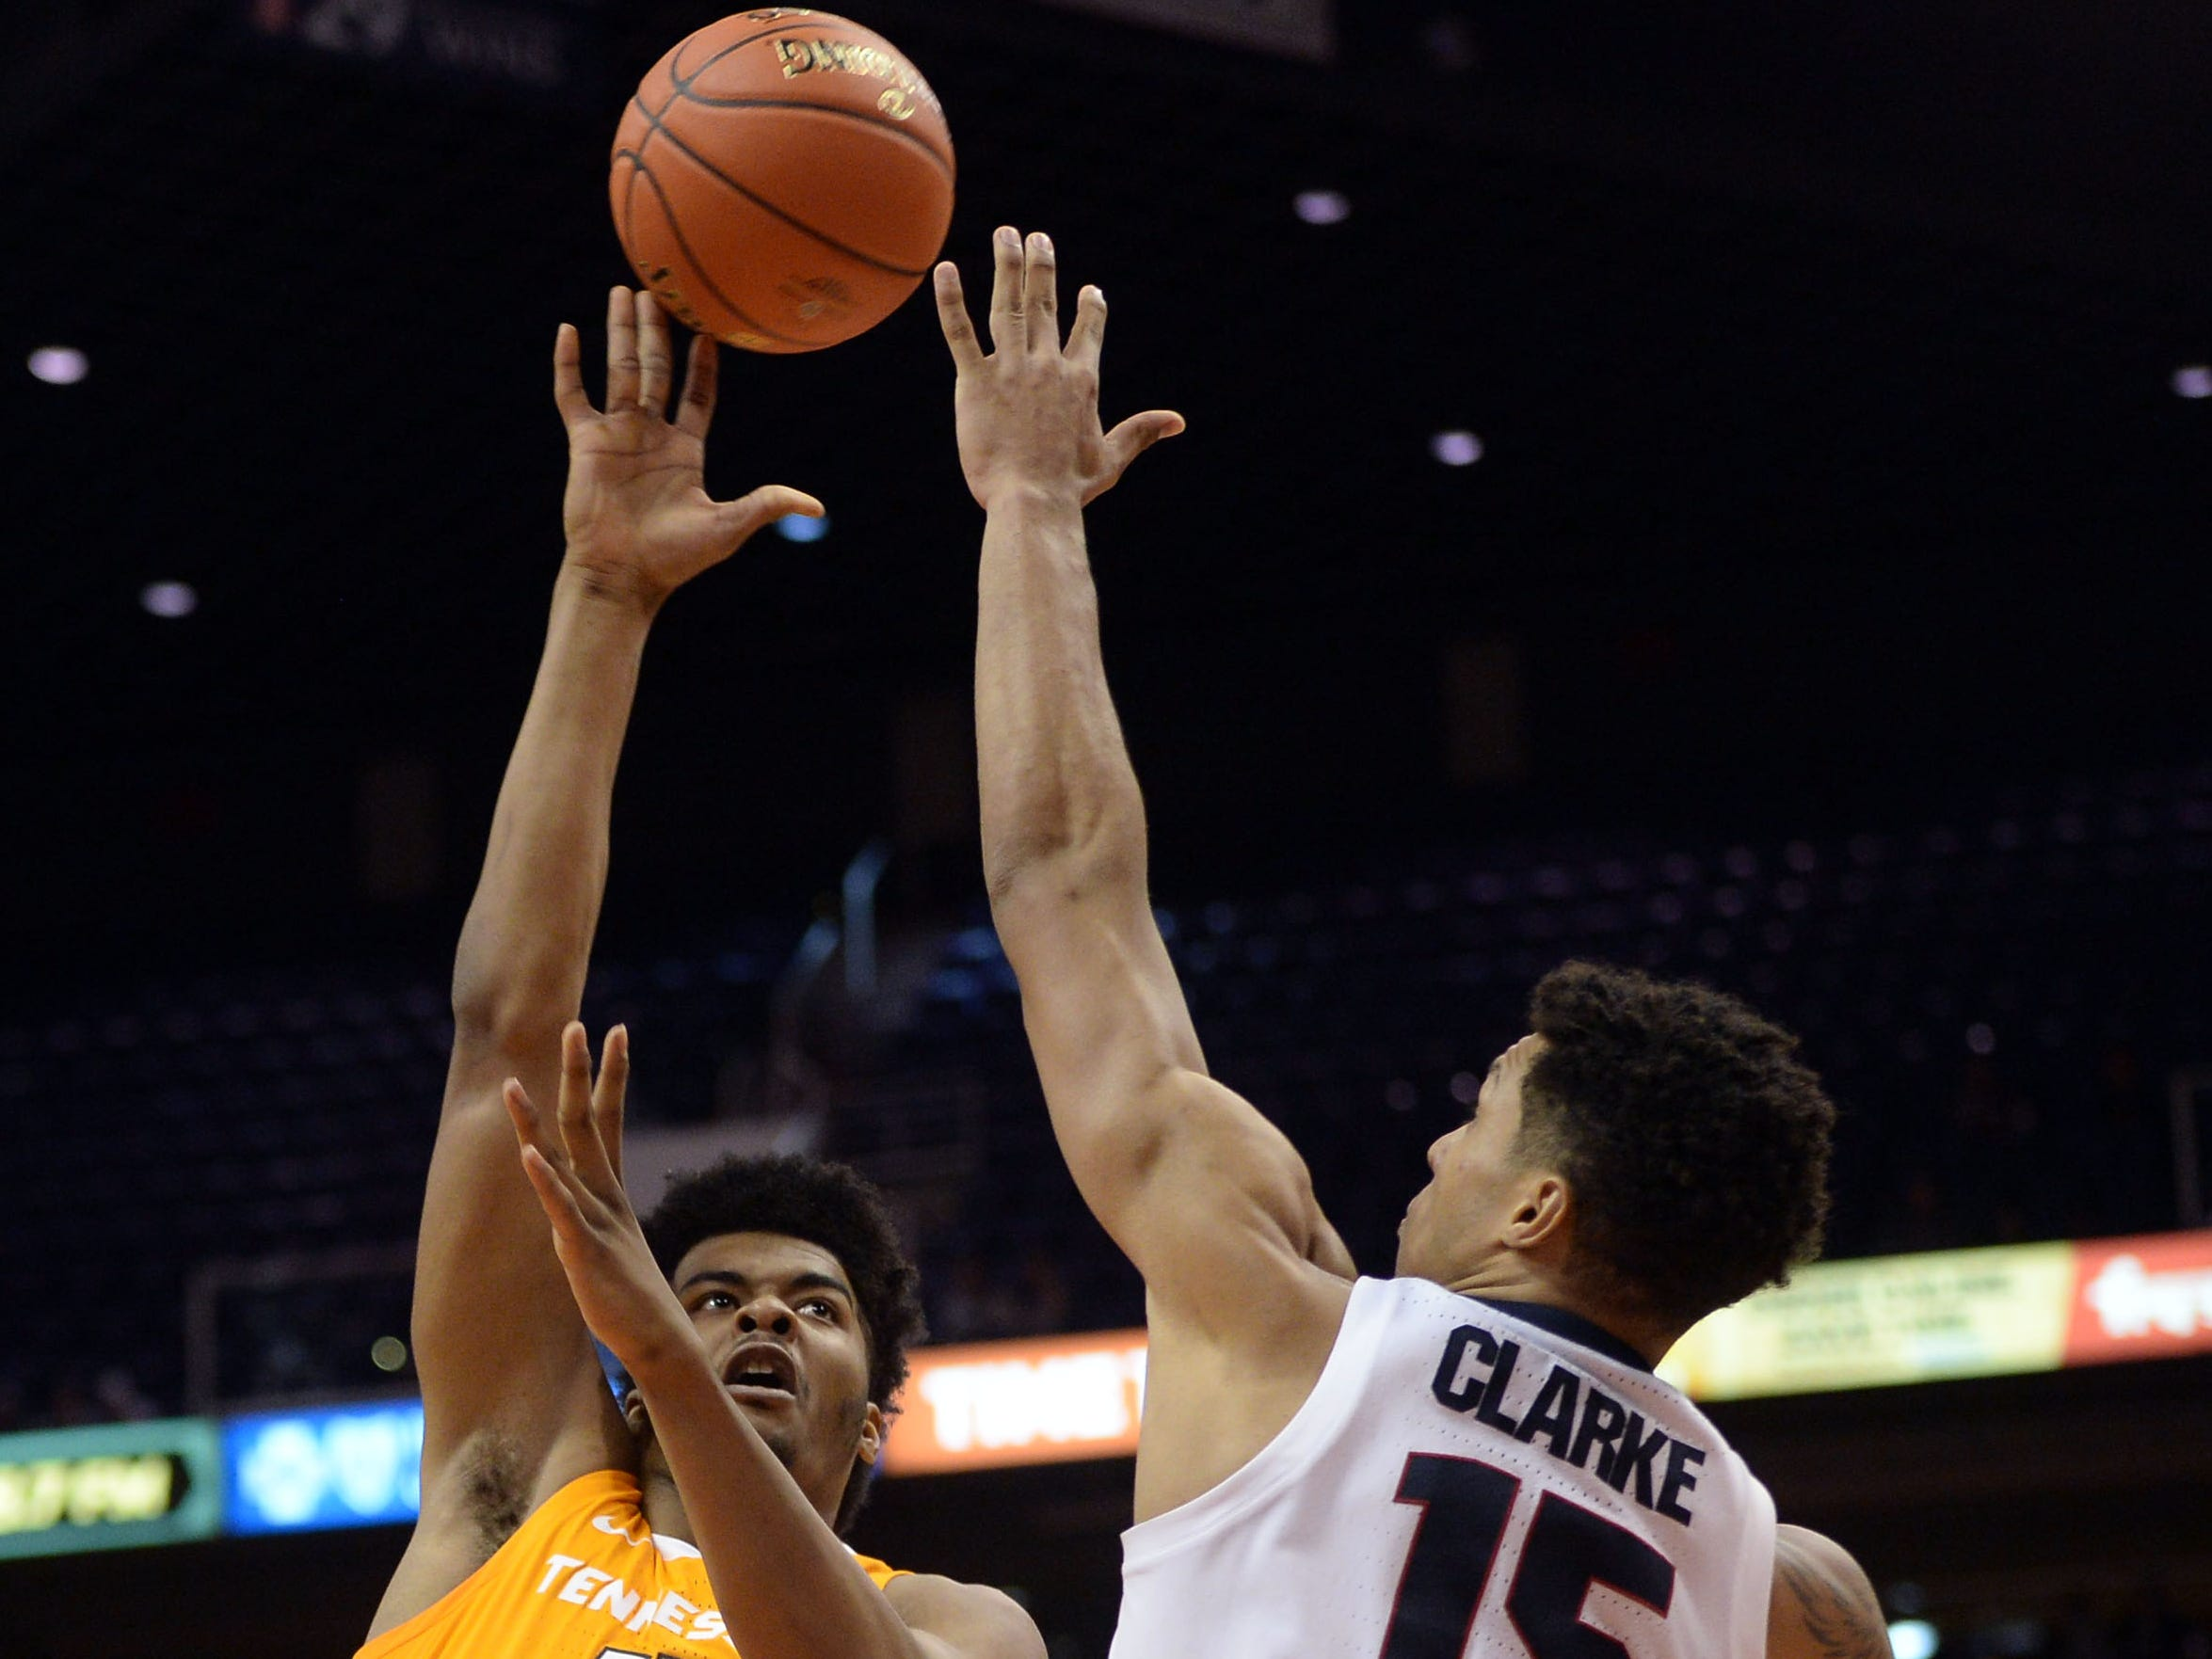 Tennessee Volunteers forward Derrick Walker (15) shoots over Gonzaga Bulldogs forward Brandon Clarke (15) during the first half at Talking Stick Resort Arena.